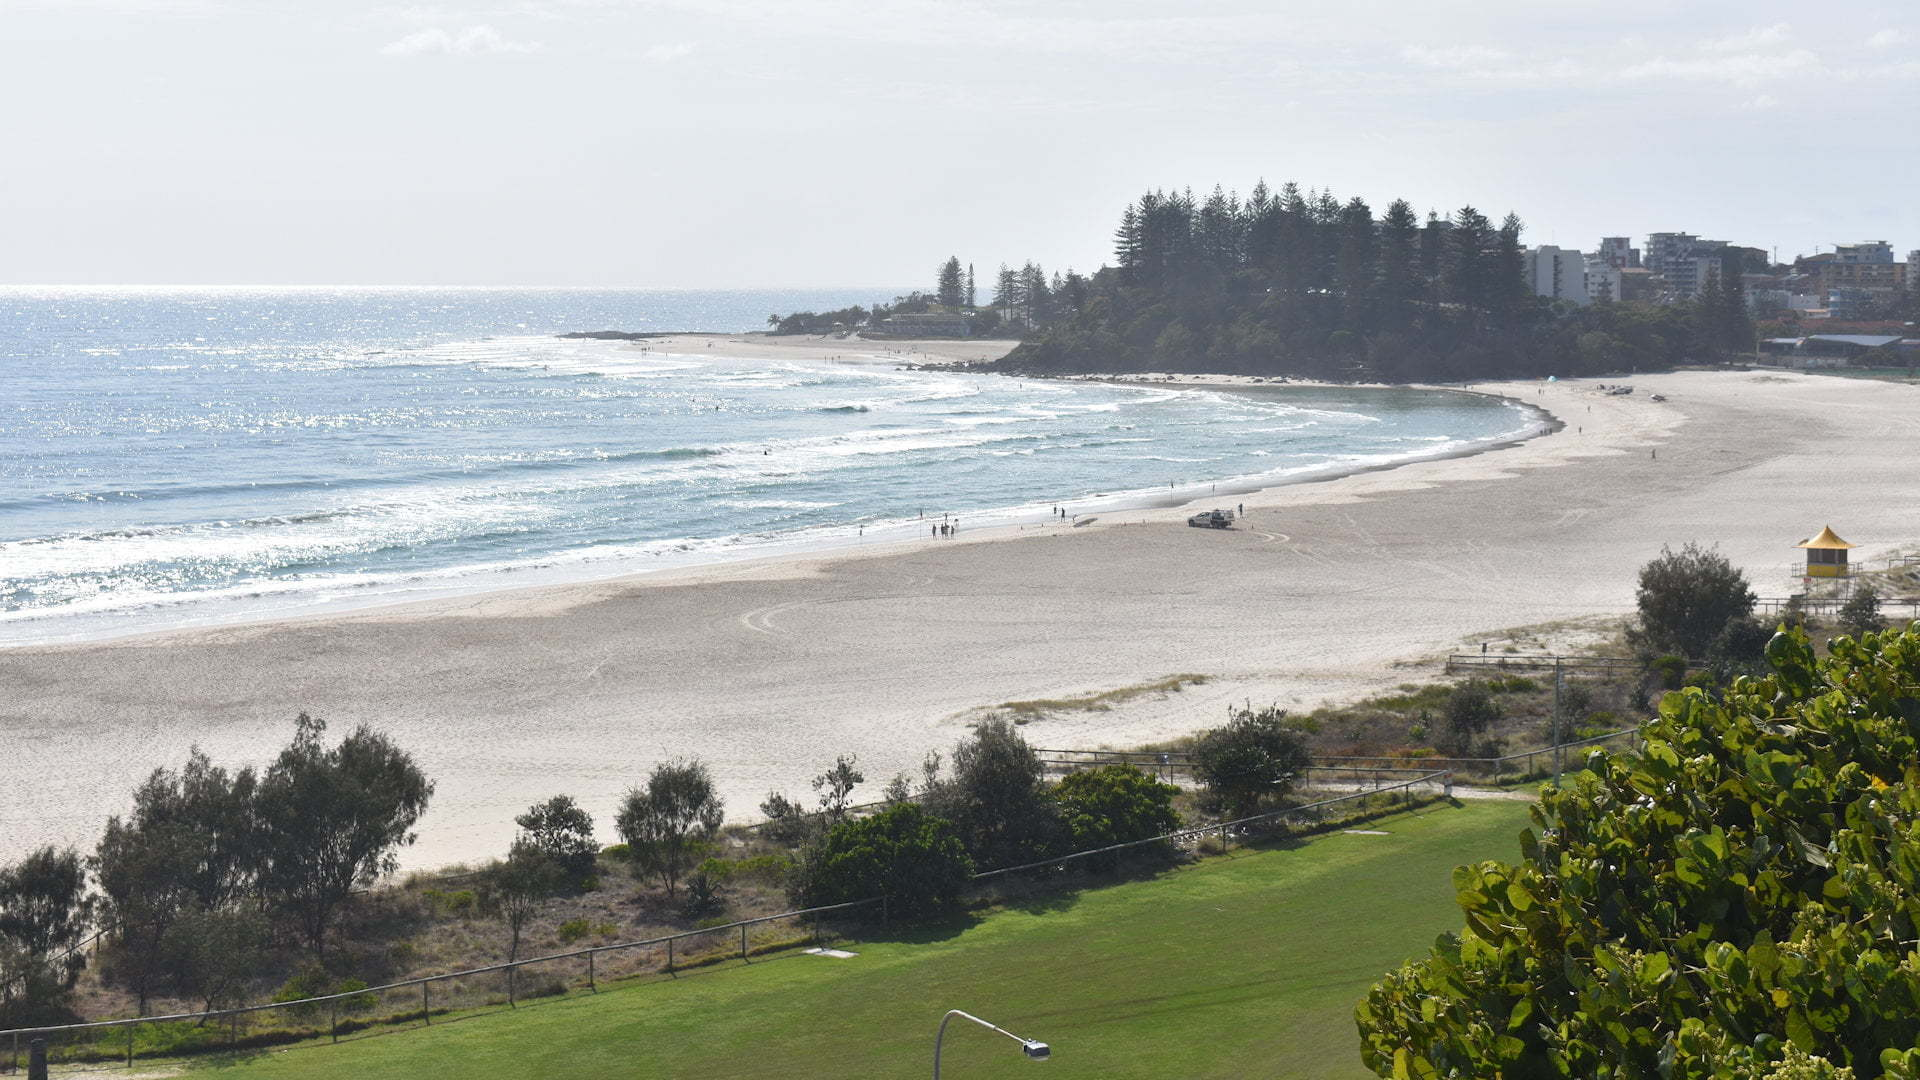 View of Coolangatta Beach showing green grass parkland before the wide sandy beach and the headlands at the other end of the beach